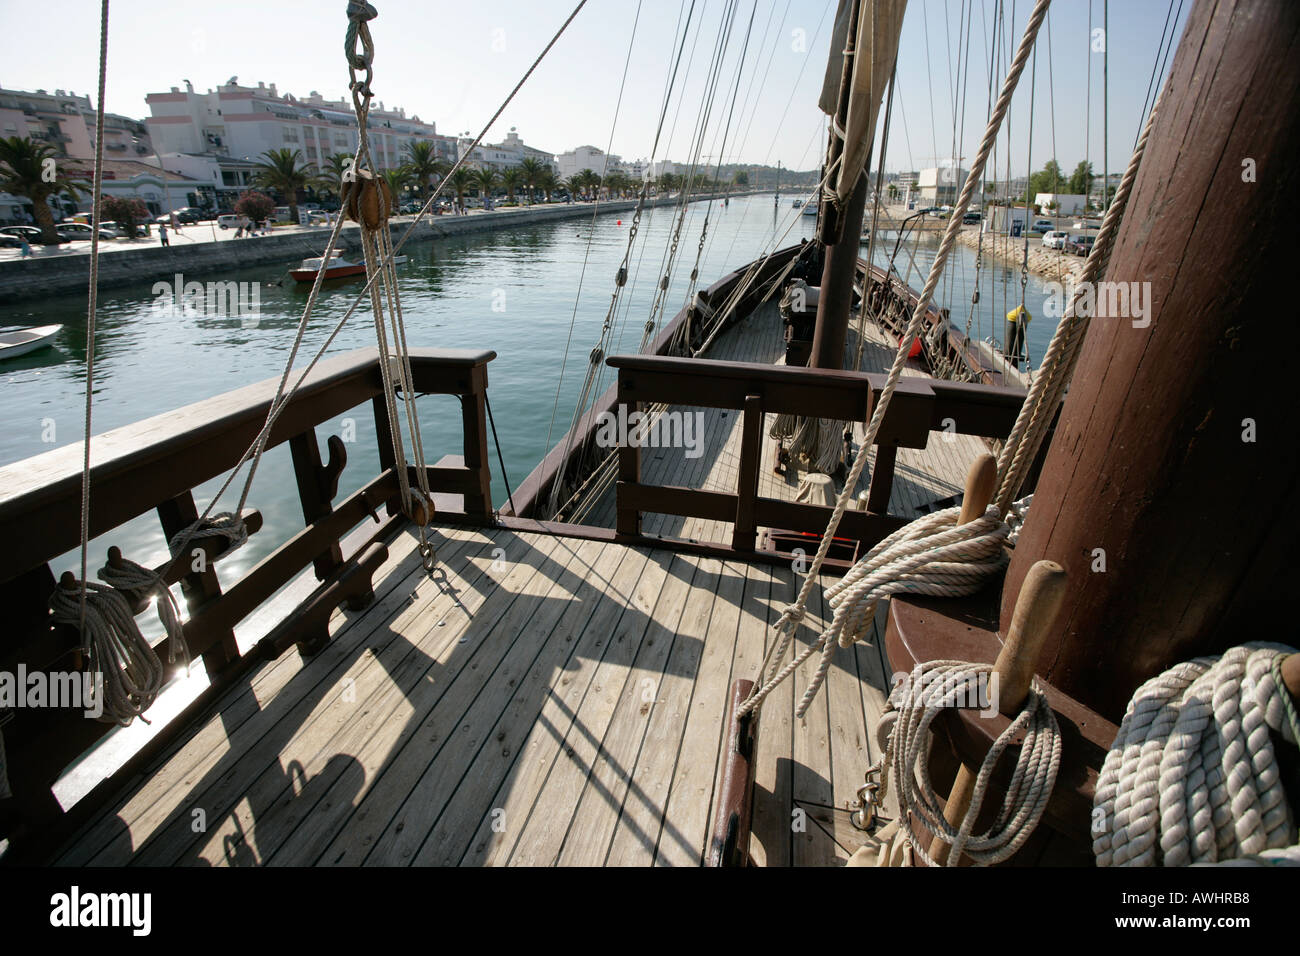 A view of the main canal through Lagos Portugal from the deck of a reproduction caravel sailing ship - Stock Image